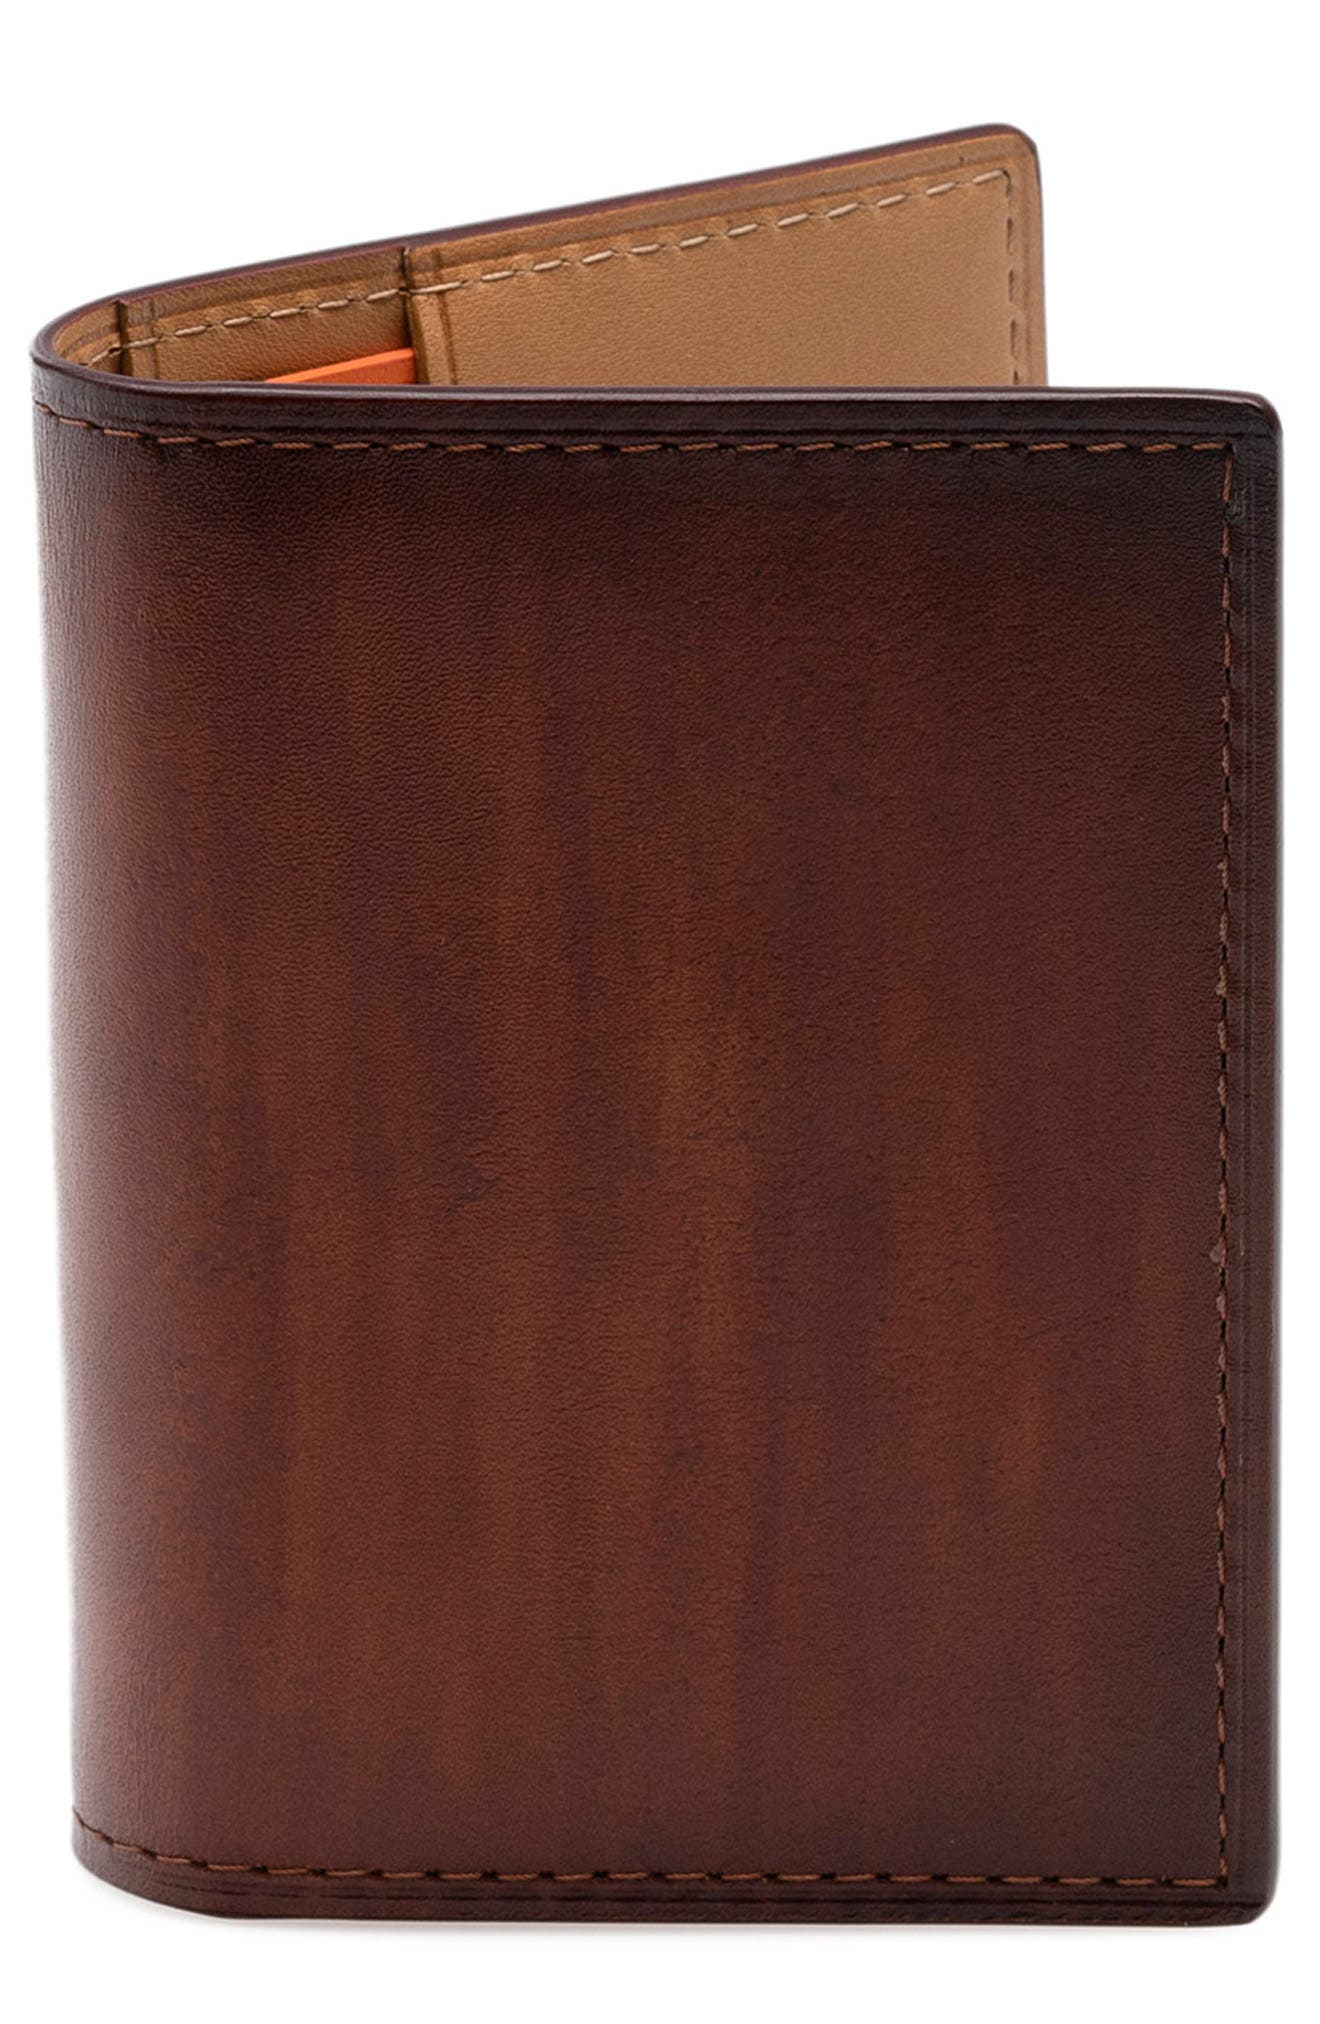 A slim card case with an ID window and two slots for your cards is cut from Italian leather in beautifully tanned and dyed patinas that becomes more defined over time. Style Name: Magnanni Leather Card Case. Style Number: 5461344. Available in stores.